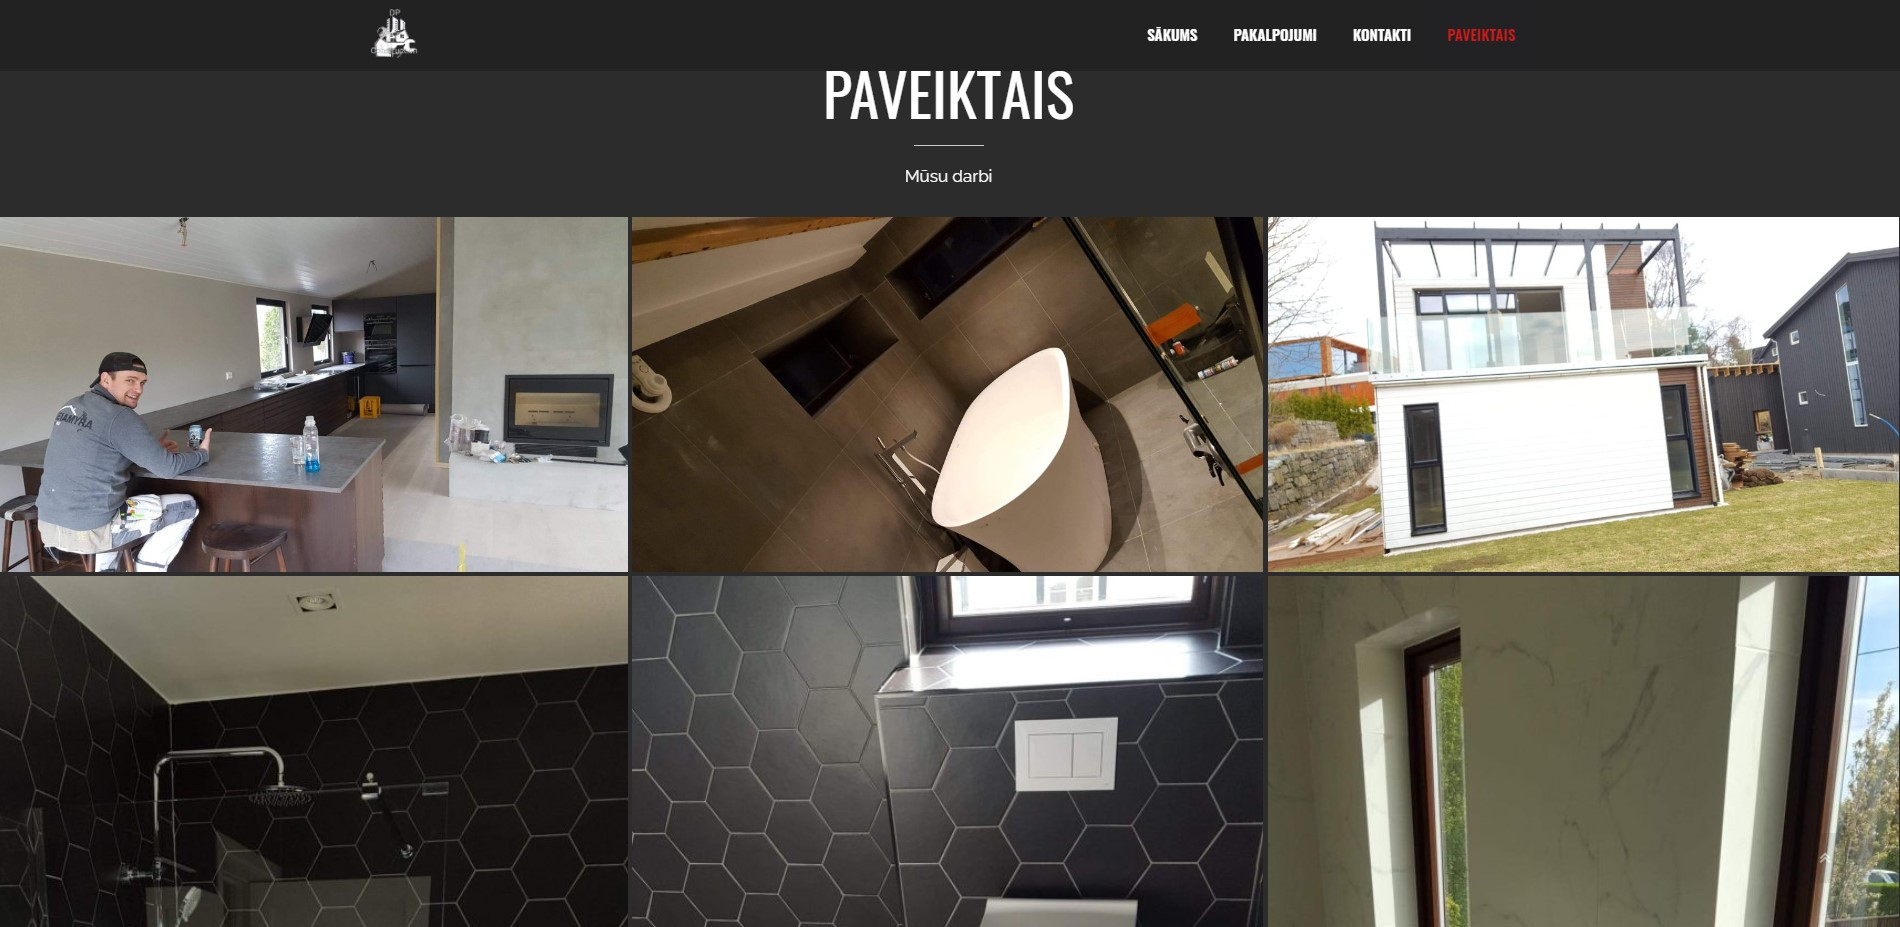 dpconstruction-paveiktais.jpg